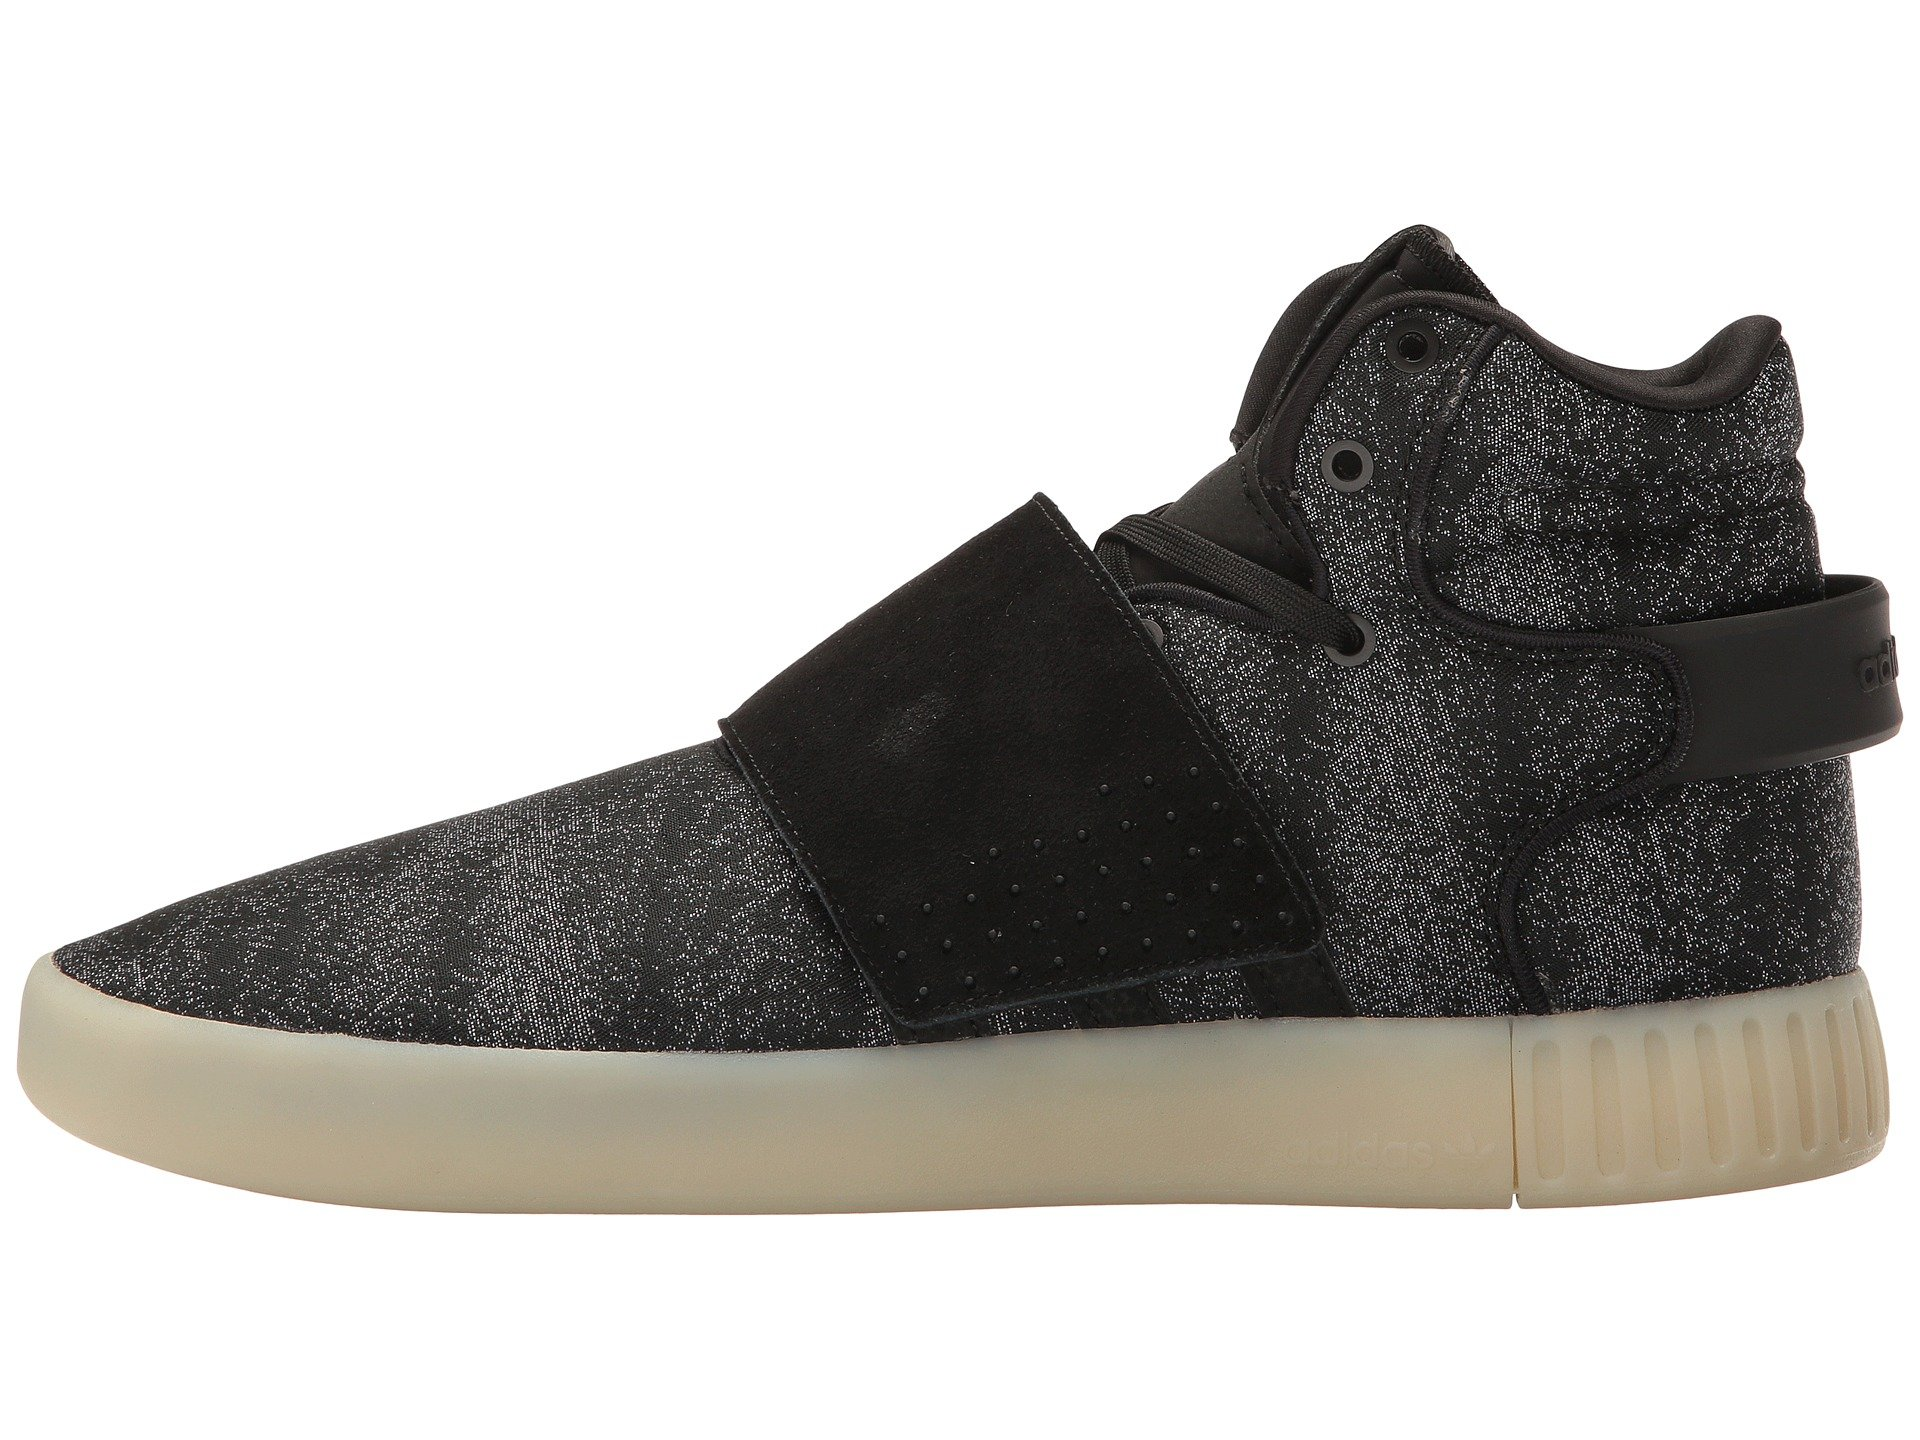 Men's adidas Originals Tubular Invader Strap Shoes Bw0873 Maroon